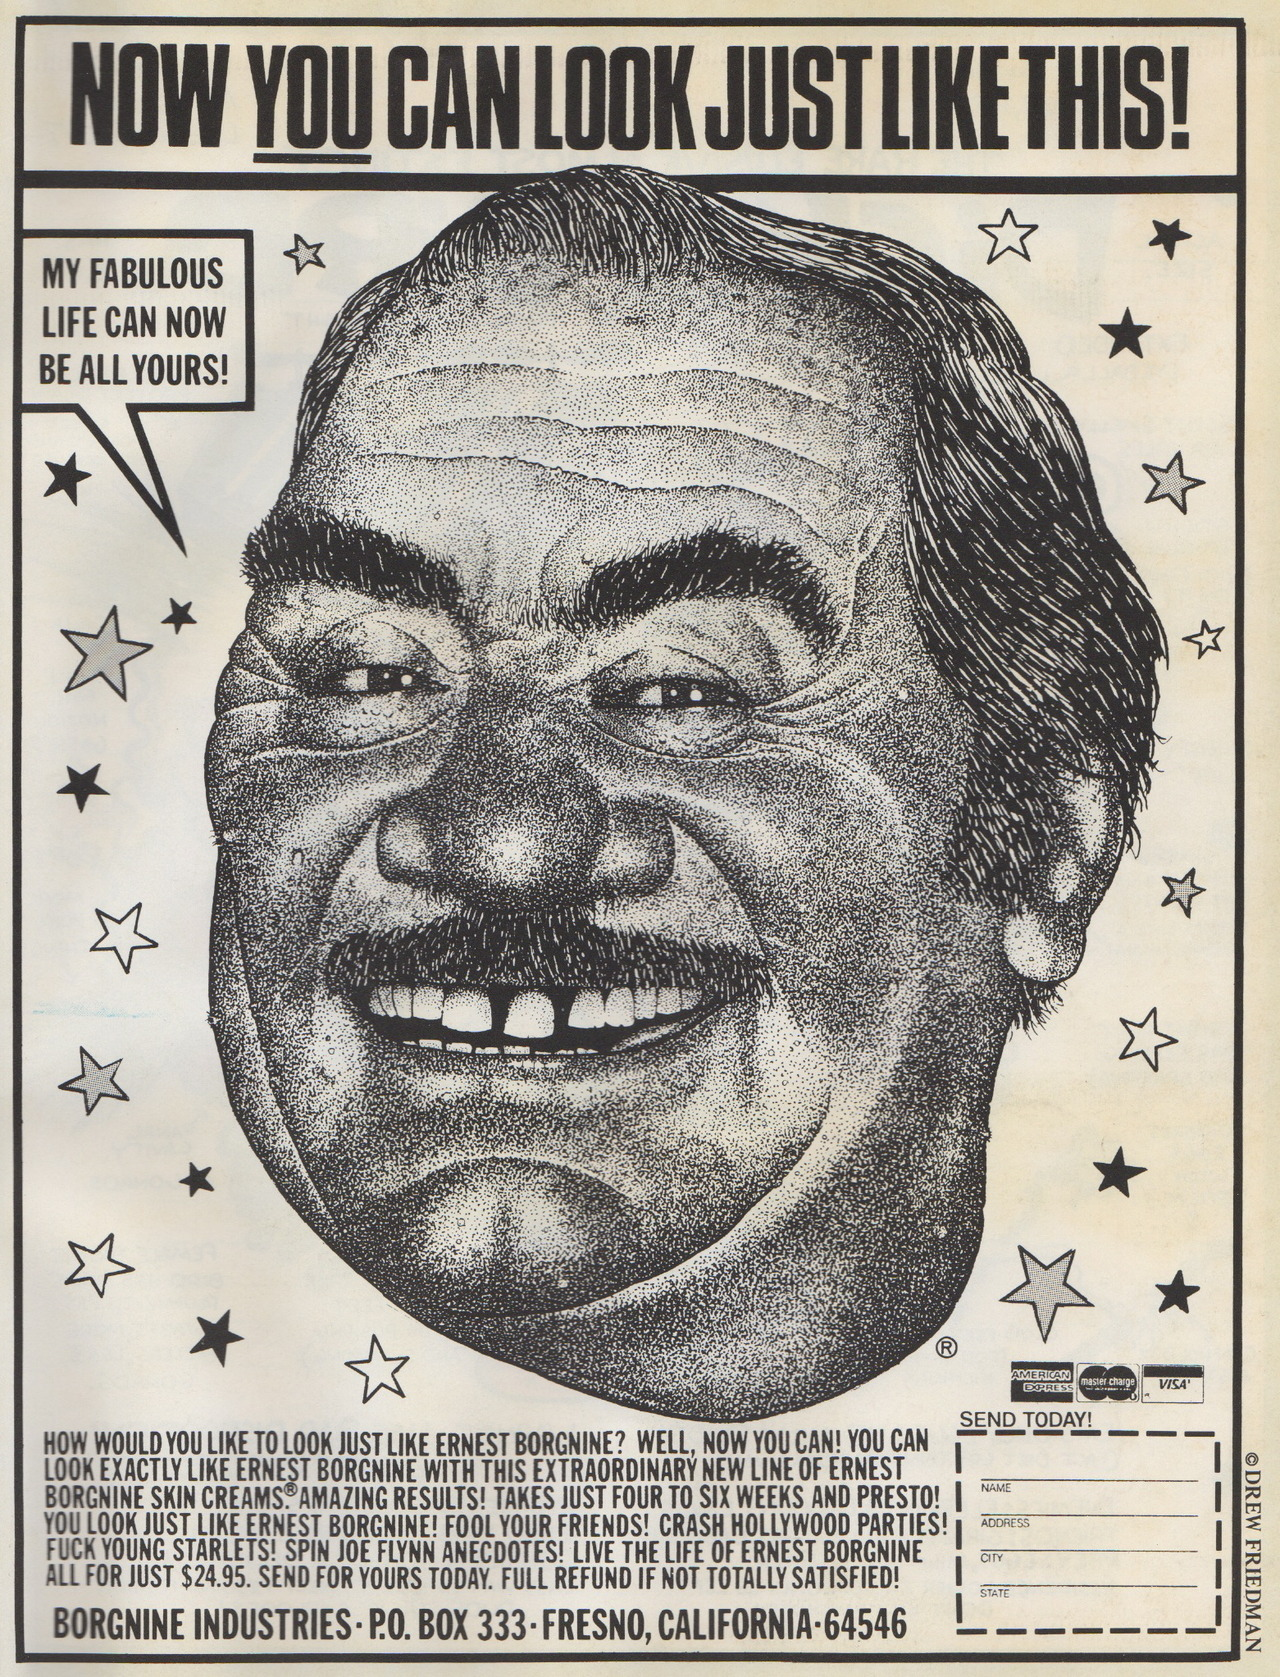 """Now You Can Look Just Like This!"" by Drew Friedman, 1984. Scanned from Weirdo Number 10, Last Gasp Eco-Funnies, Summer 1984"